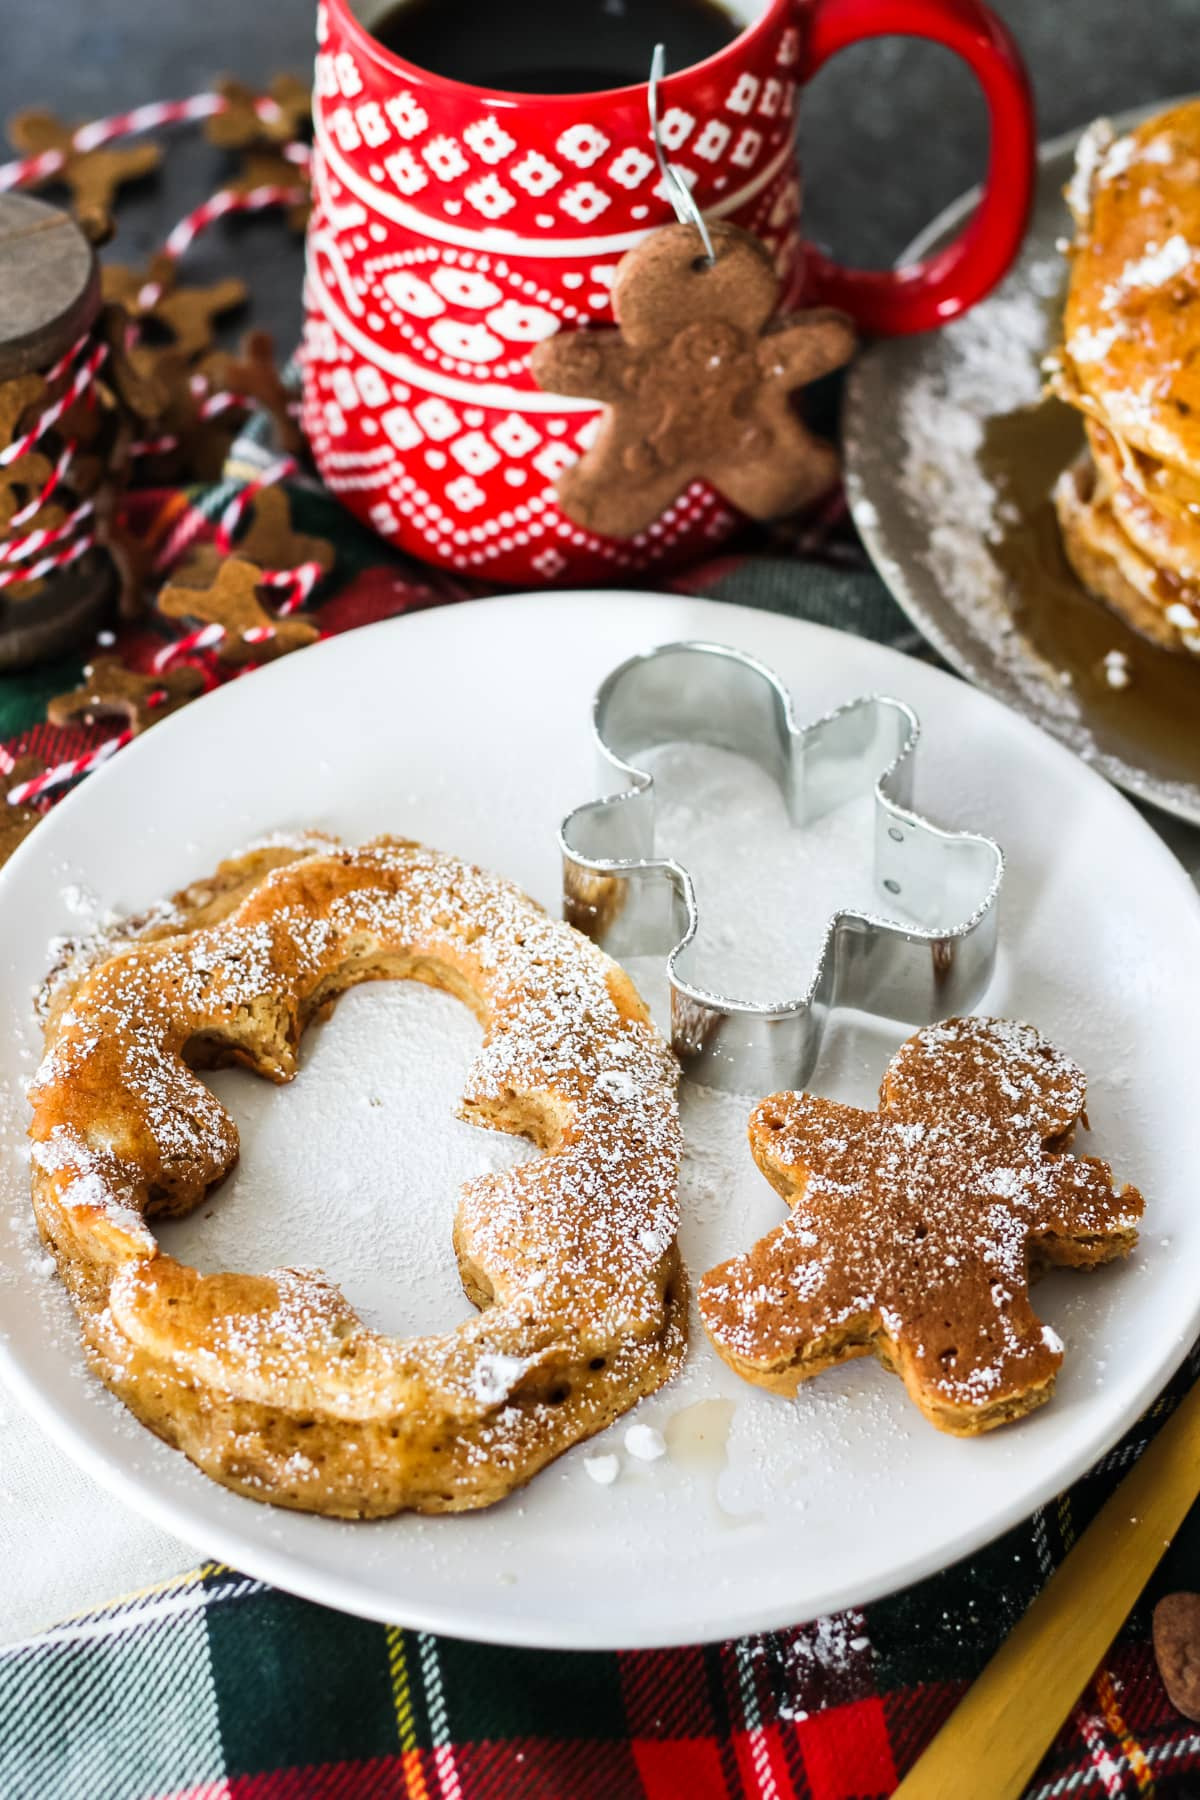 a Gingerbread Pancake on a plate with a gingerbread man cut out of the centre. background includes a cup of coffee and a felt mini gingerbread man garland